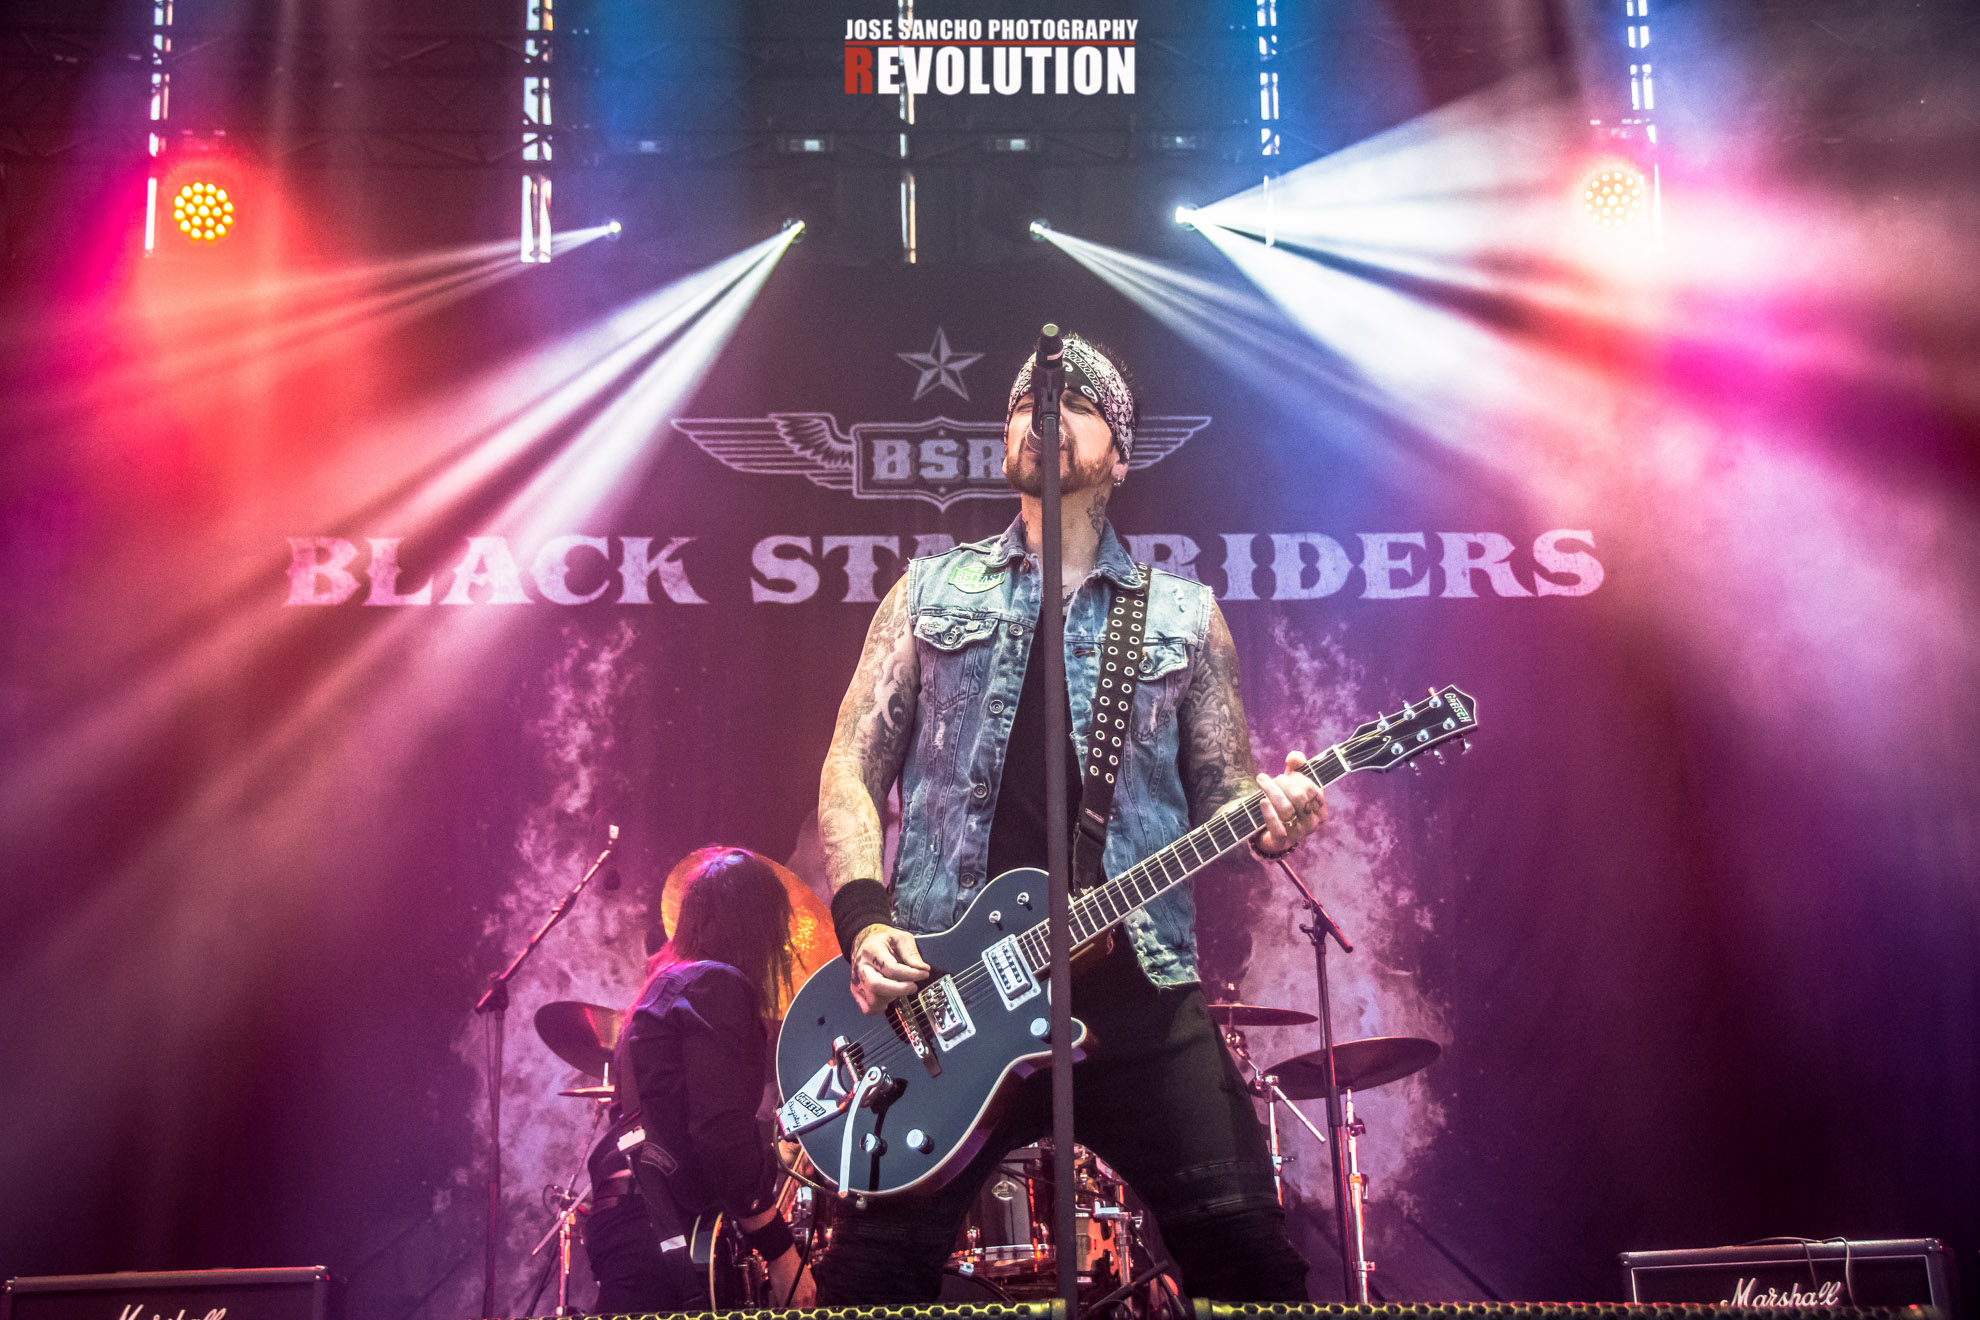 Black Star Riders - Jose Sancho Photography